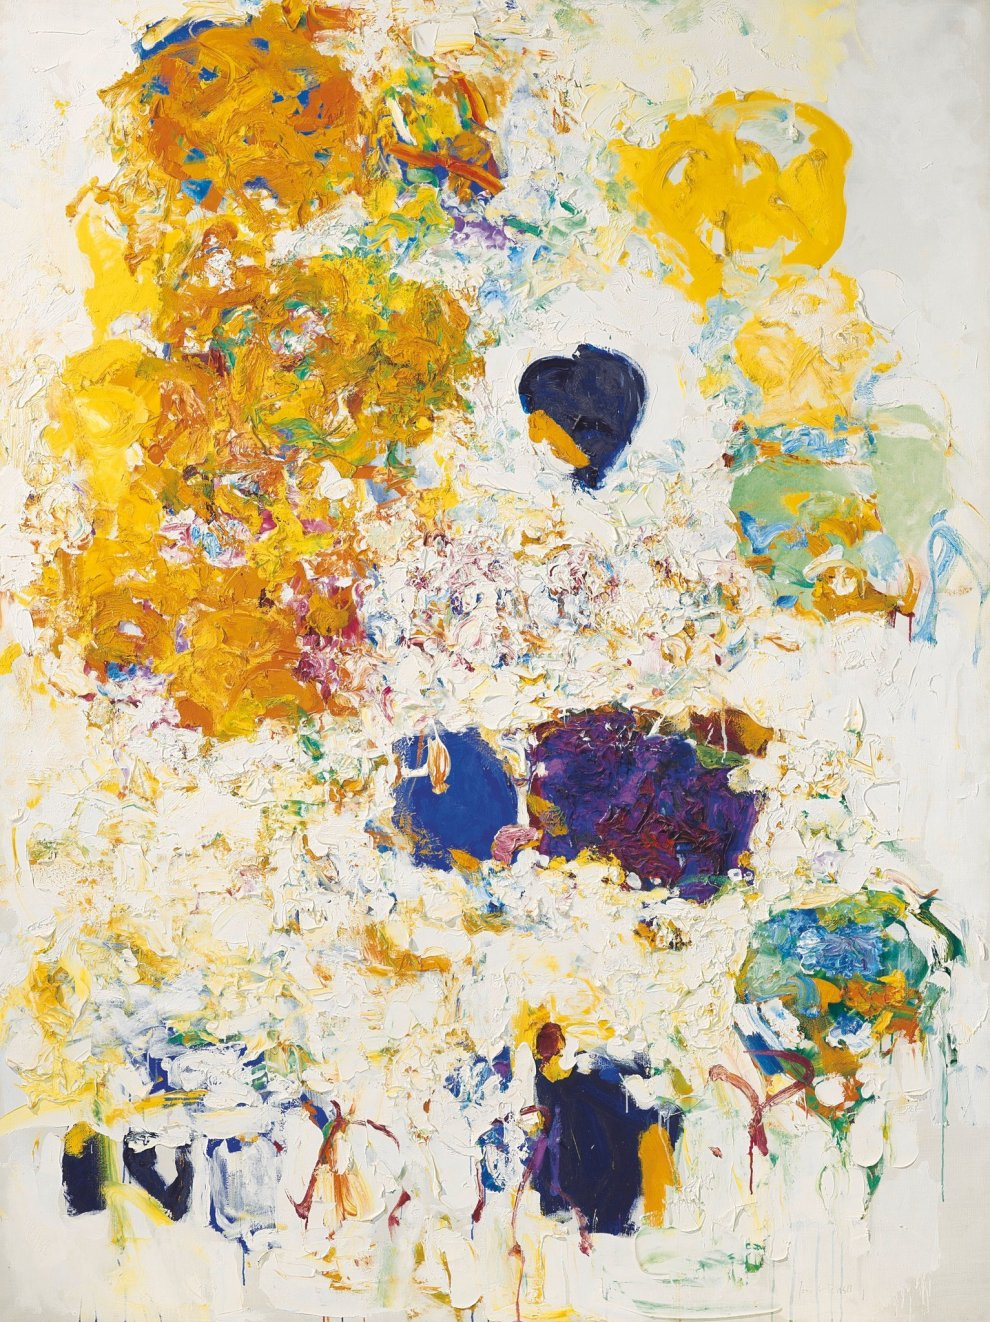 Joan Mitchell,  Blueberry  (1969-70) set a $16.6m record for the artist at Christie's New York last year.